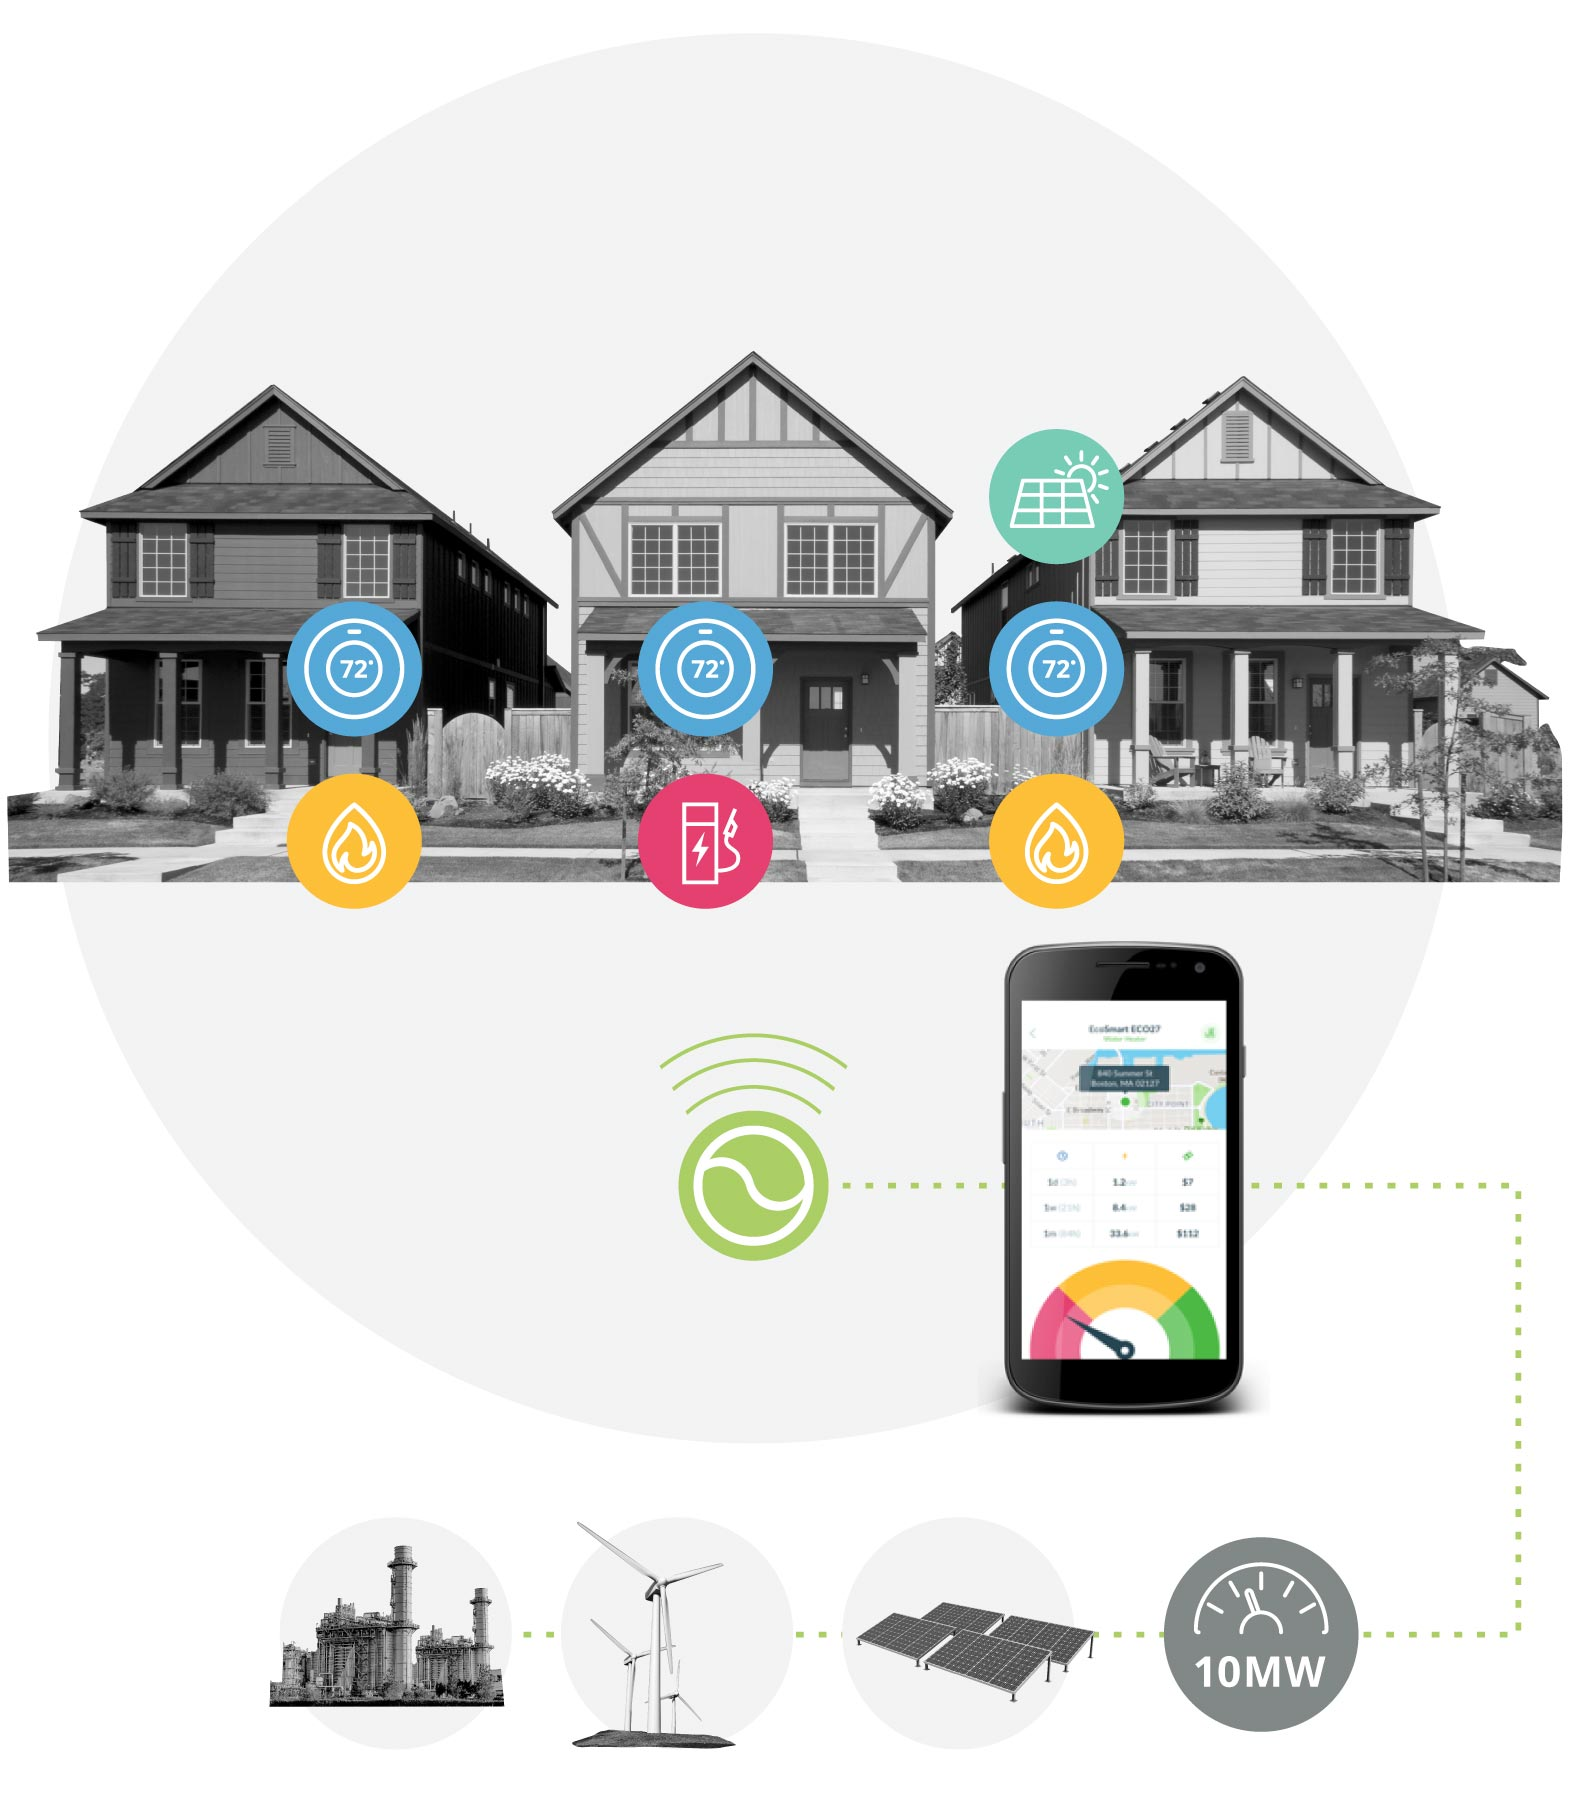 Black and white photo of three homes with icons for thermostats, solar panels, ev charging, and hot water heaters, controlled by wireless technology and an app.